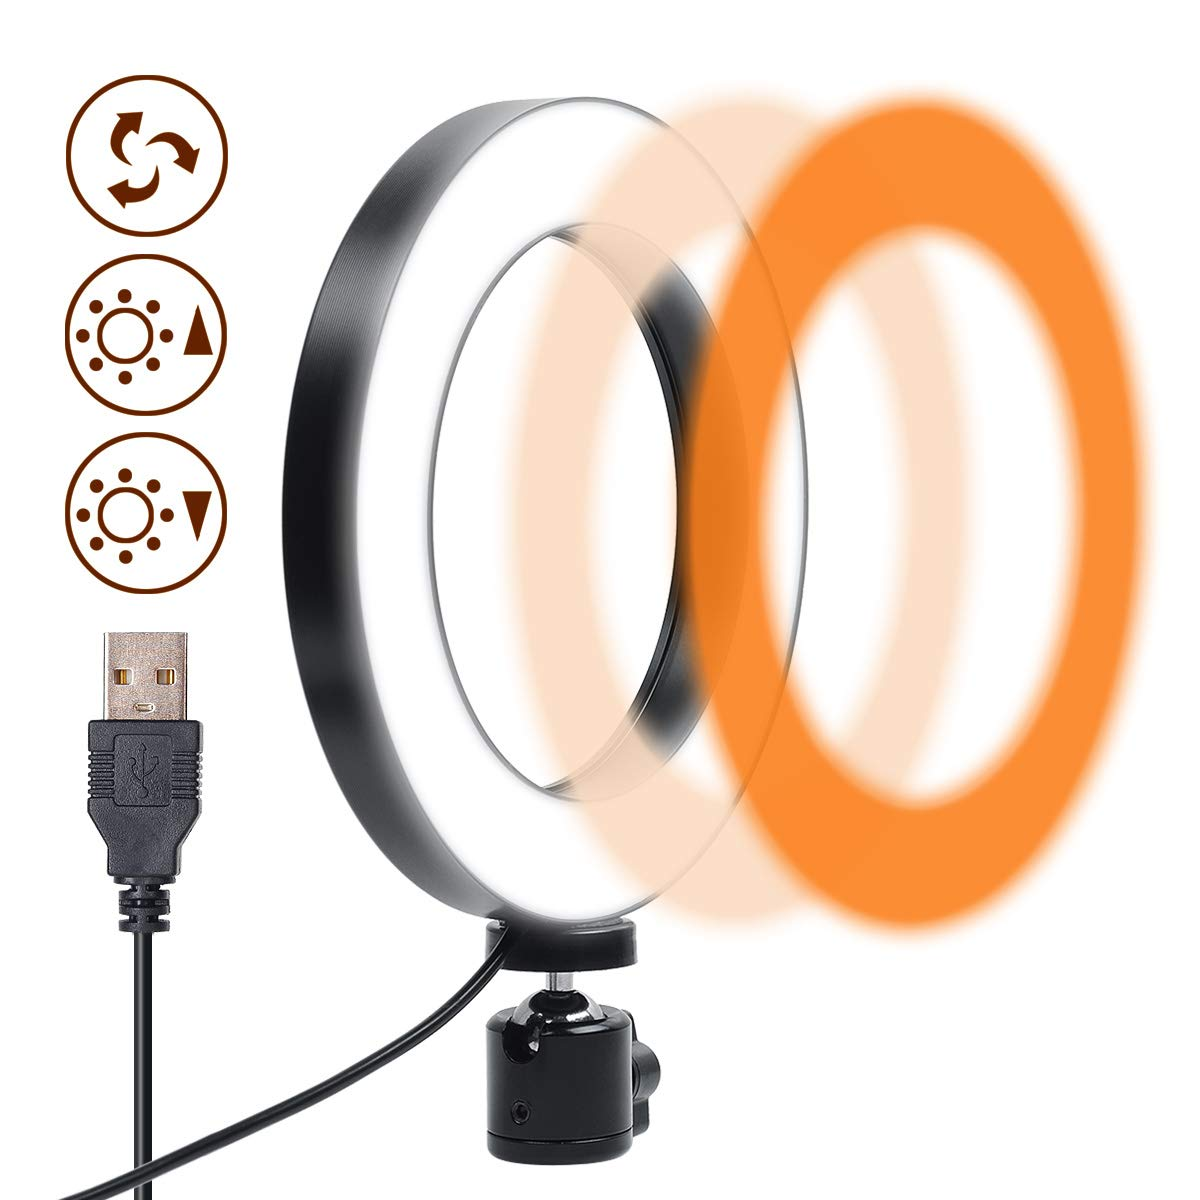 Ring Light - Gemwon 6 Inches O LED Ring Lights with 3 Modes, 10 Dimmable Brightness Levels, Premium Photography Lighting for YouTube Videos/Photos/Streaming/Makeup